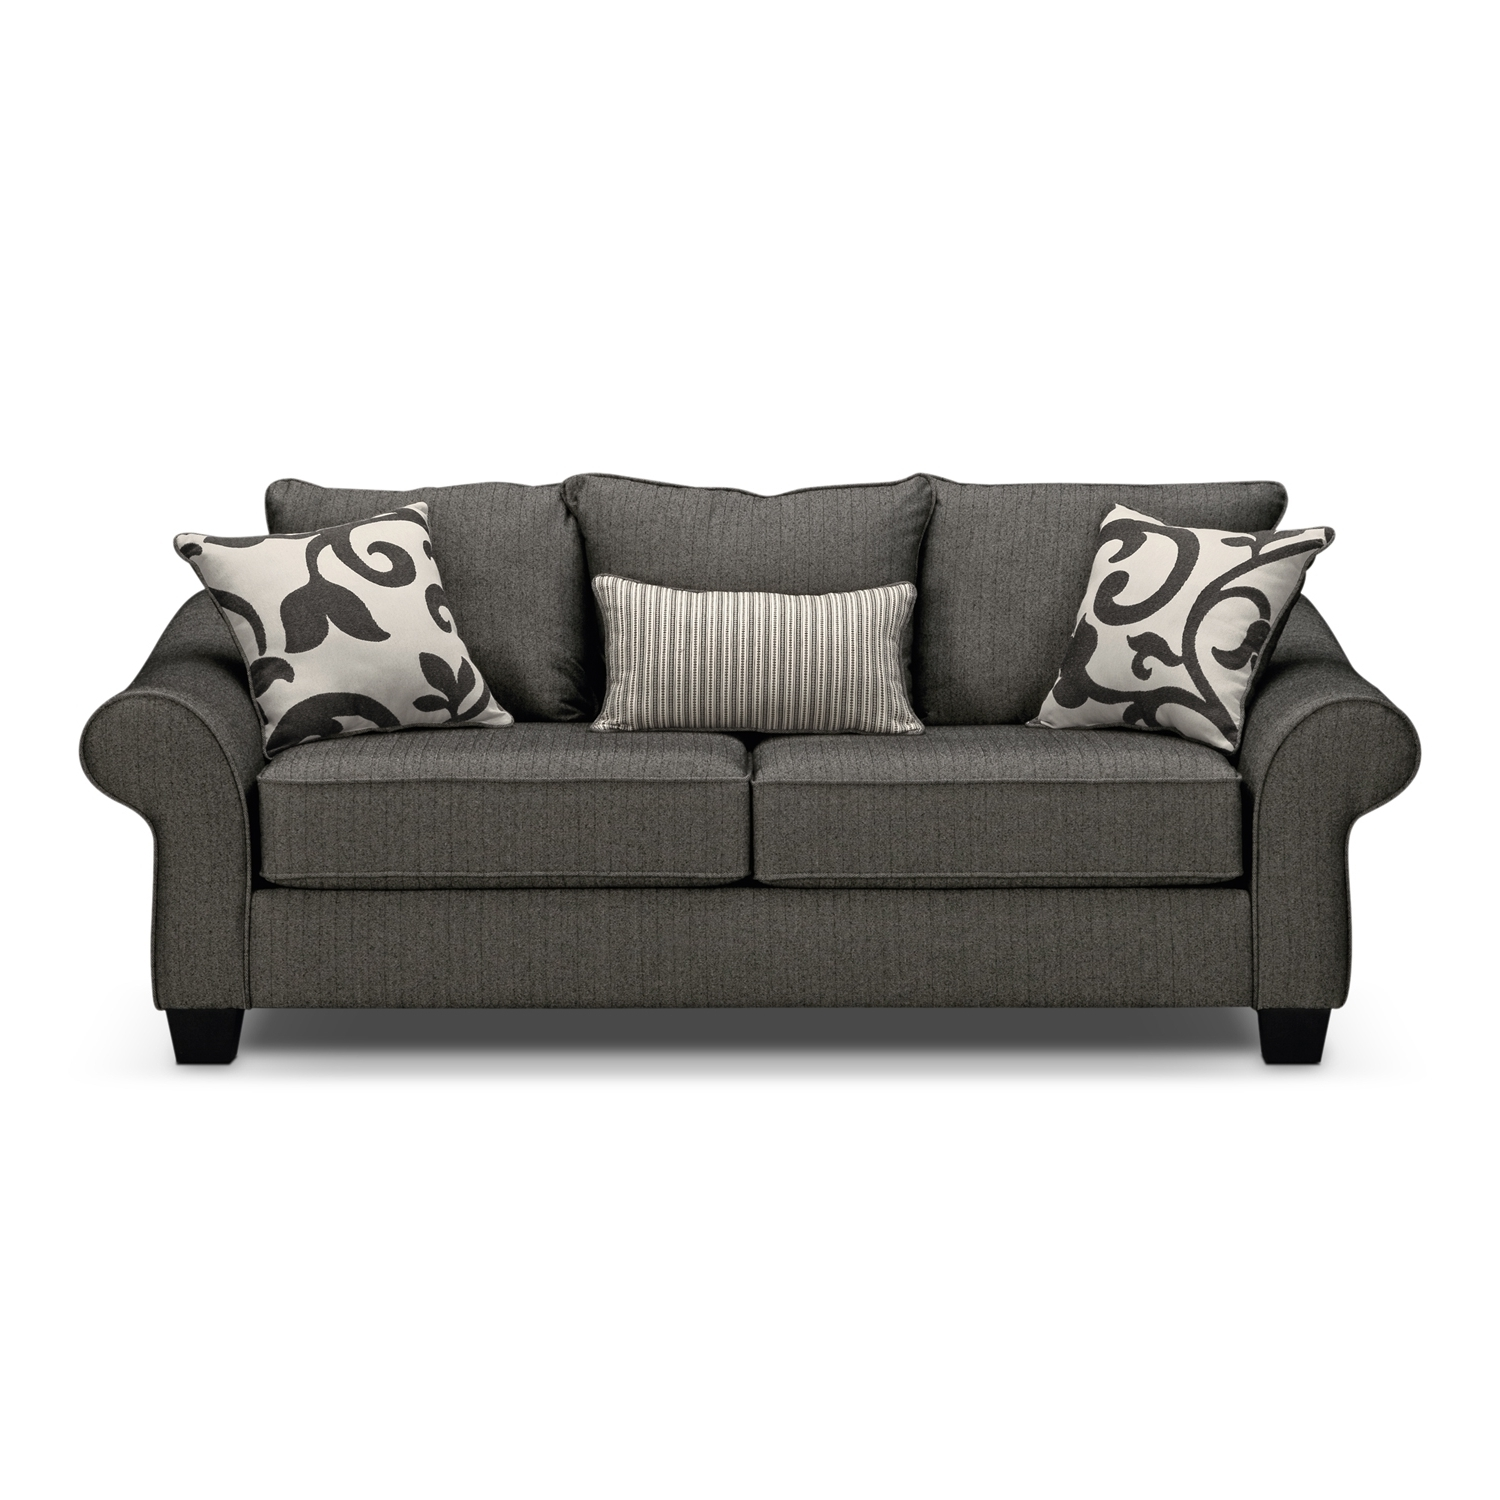 Widely Used Value City Sofas With Gorgeous Value City Furniture Sofas 46 About Remodel Contemporary (View 6 of 15)